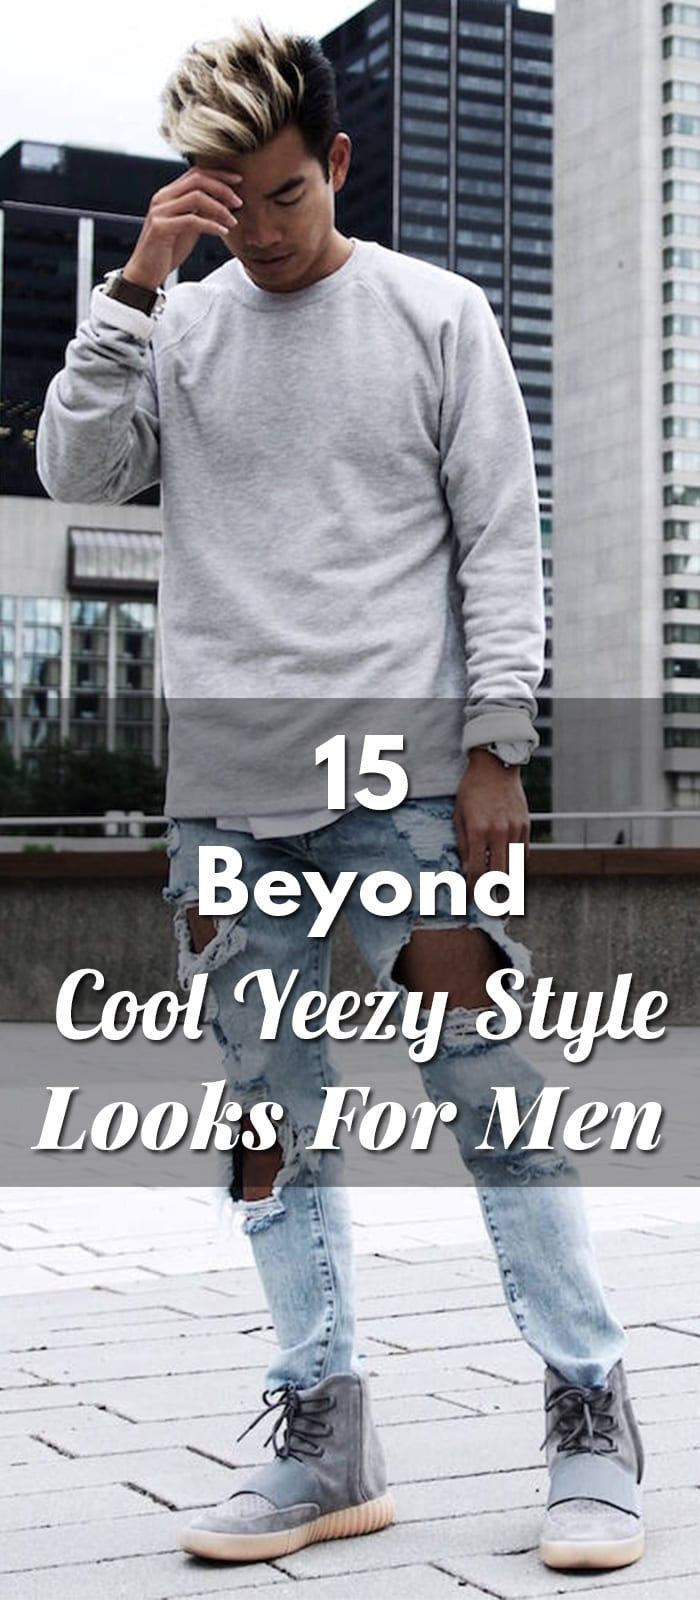 15 Beyond Cool Yeezy Style Looks For Me